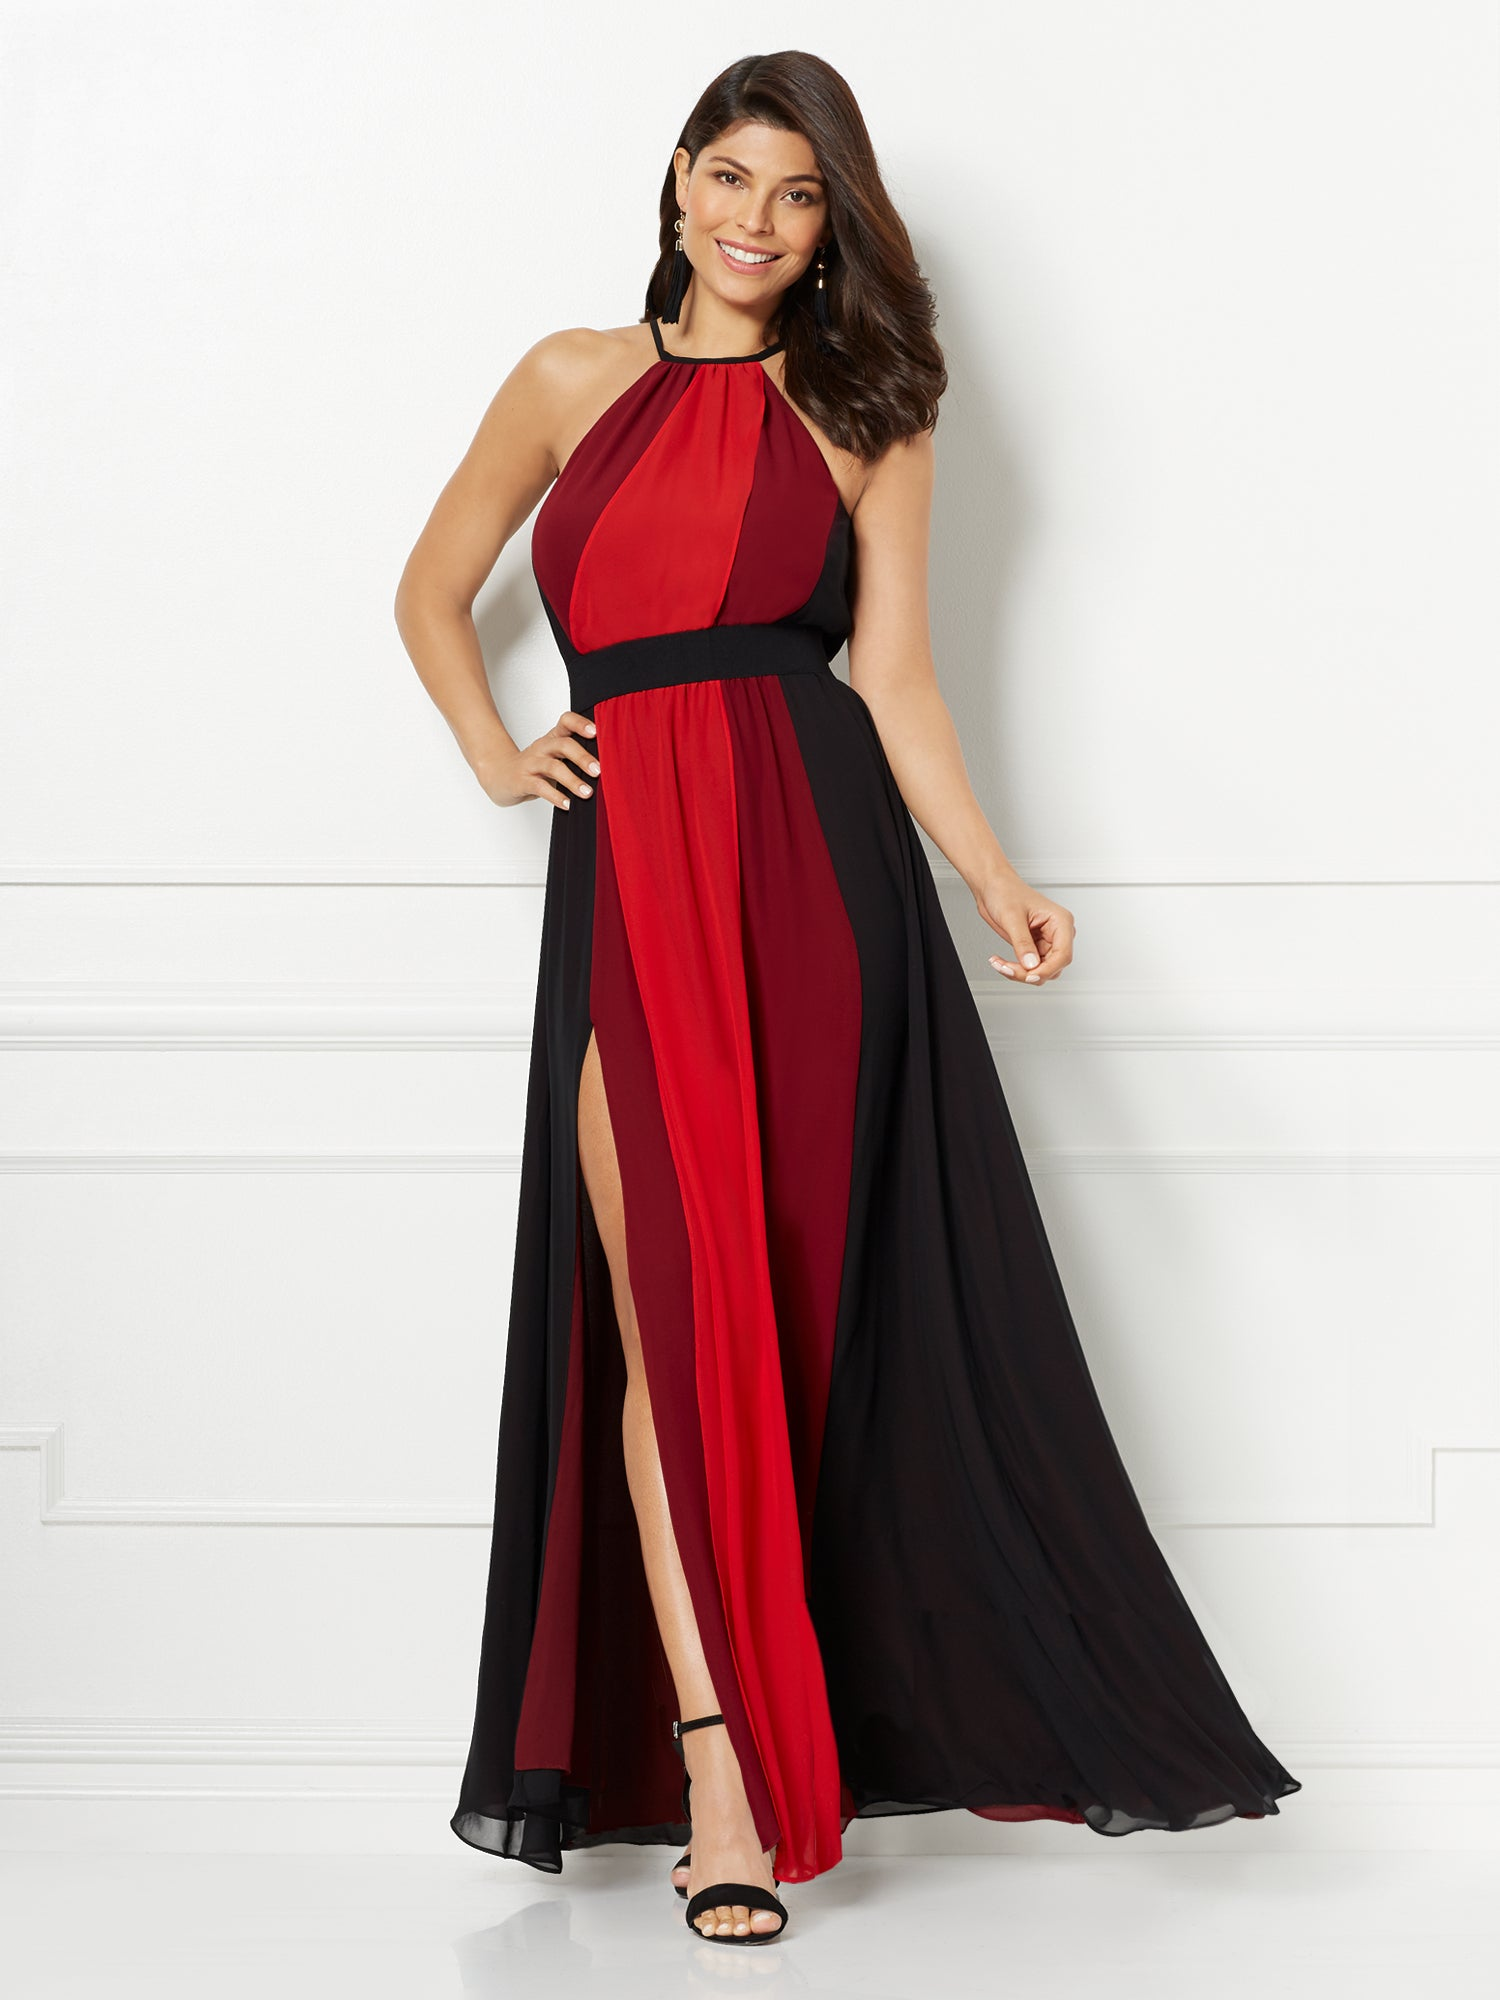 New York Company Eva Mendes Collection Antonia Maxi Dress In